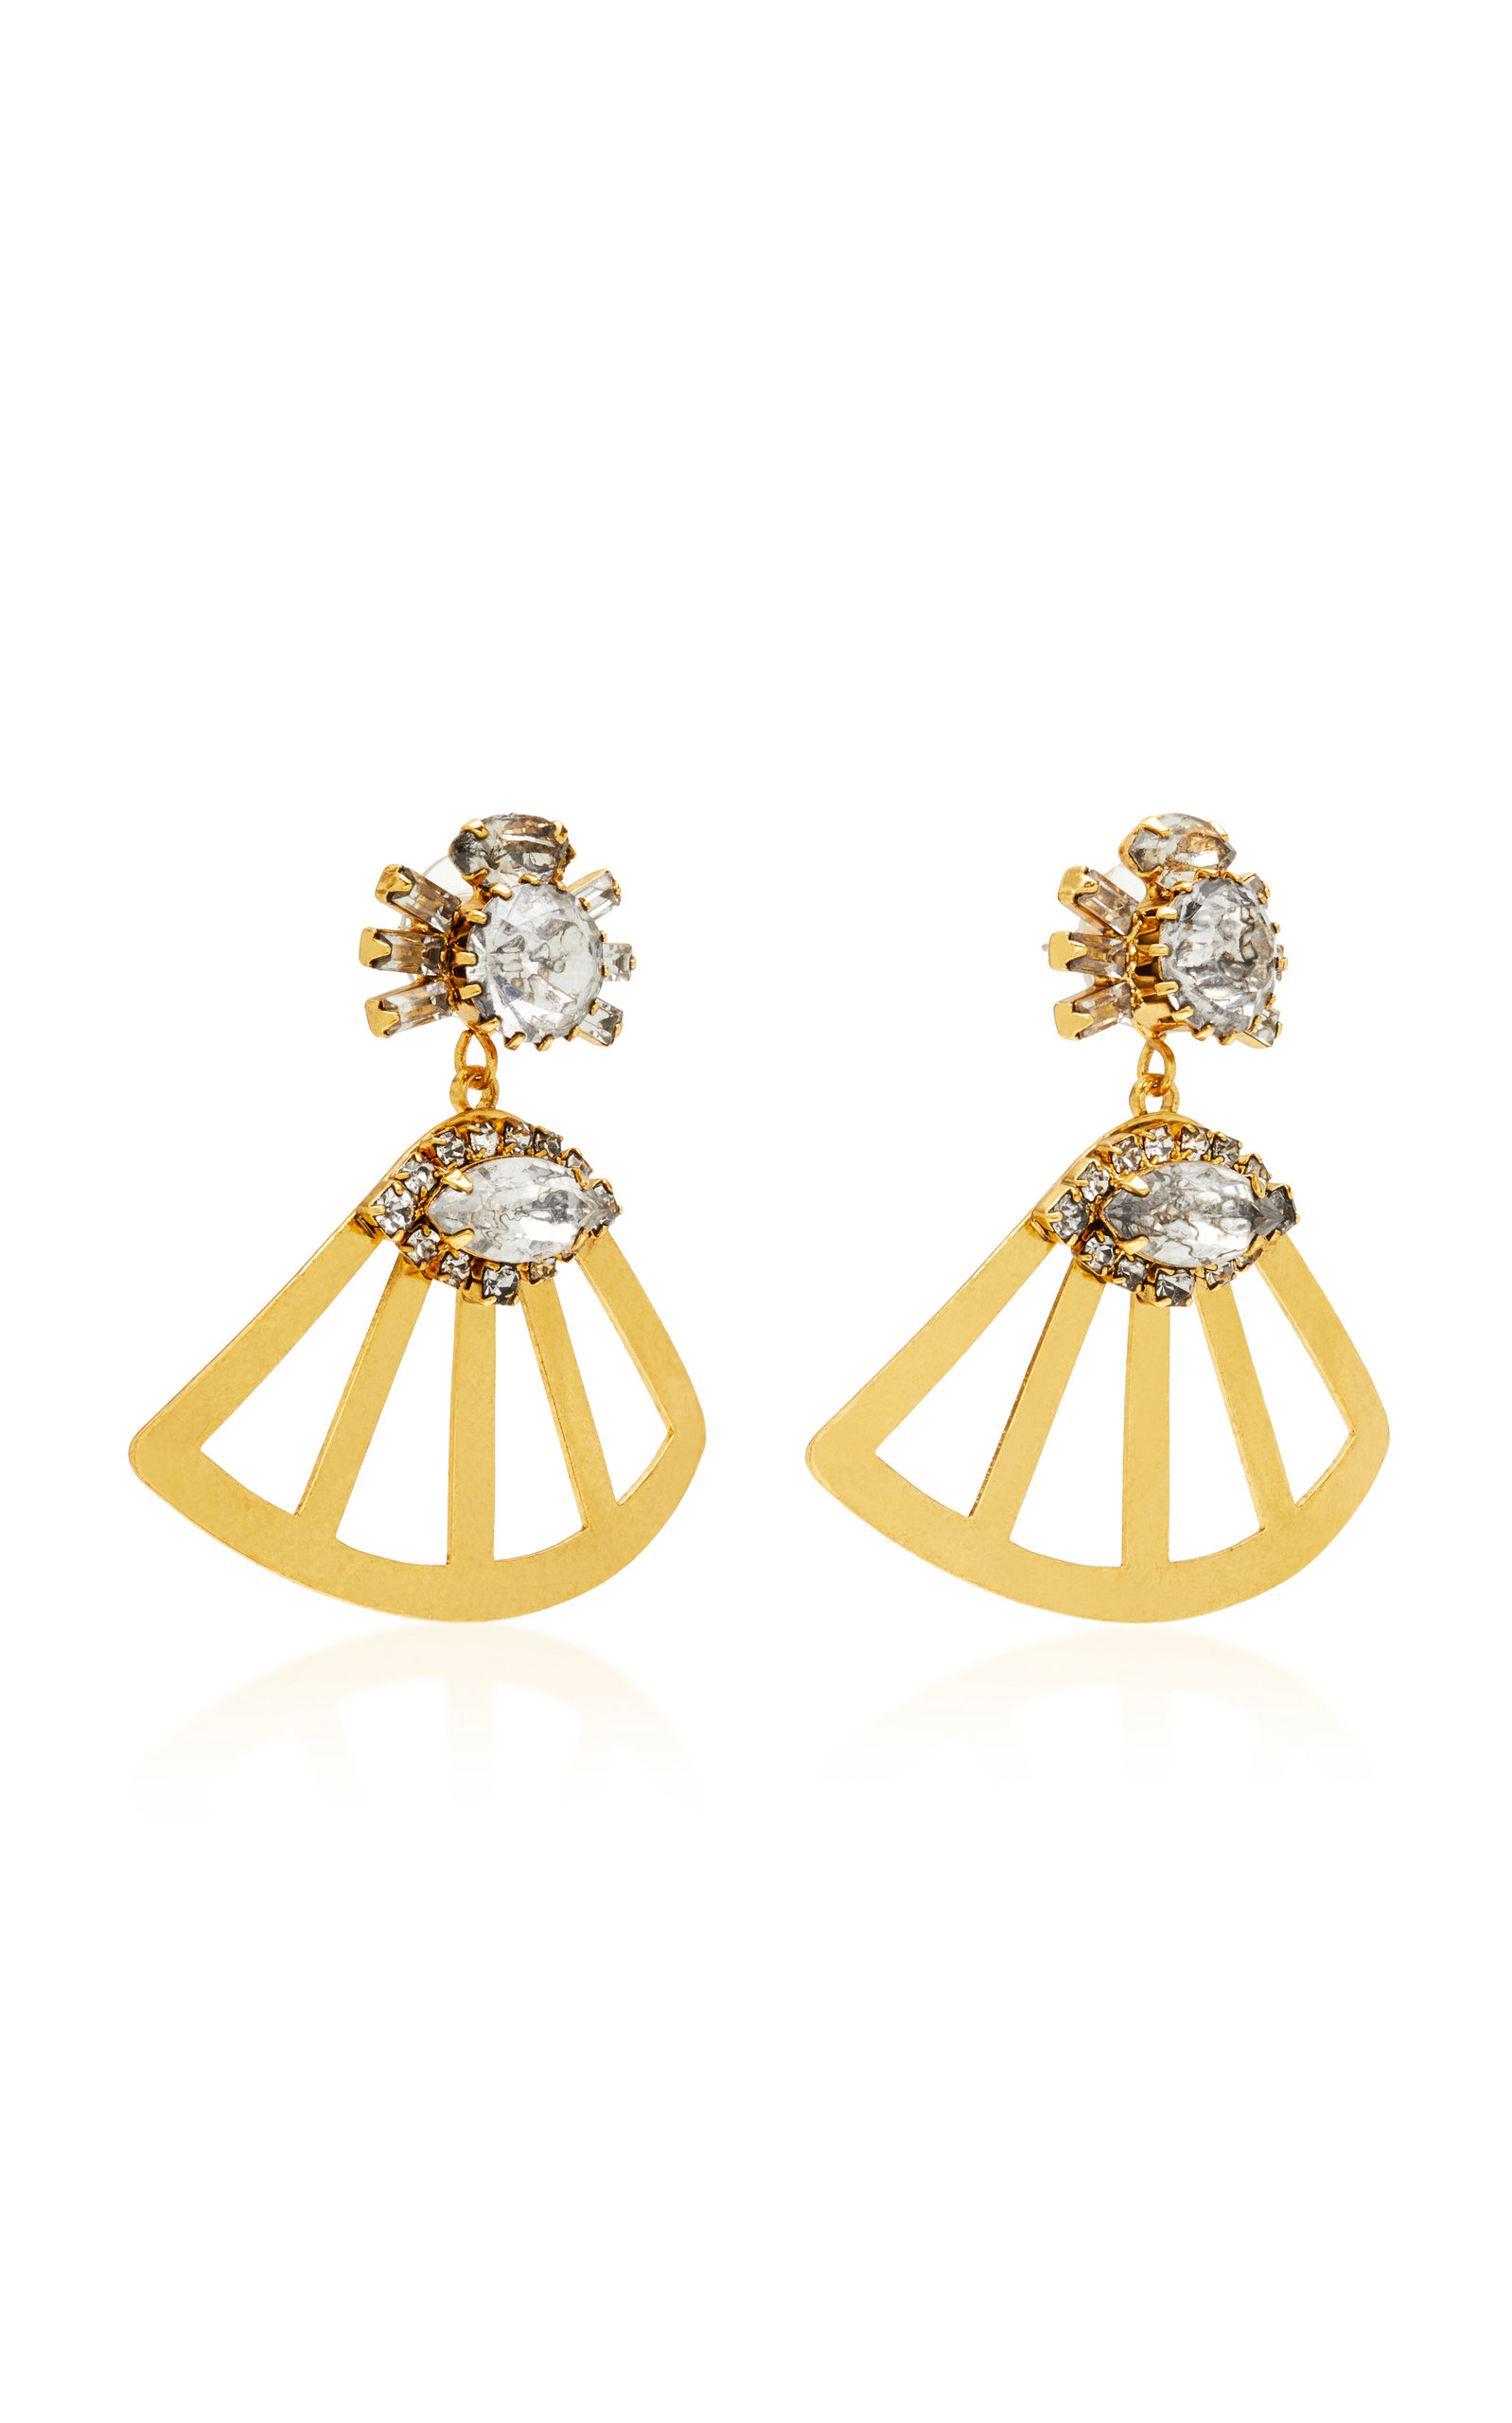 Fanned Lotus 18K Gold-Plated Crystal Earrings Nicole Romano 99FpVRiMlx